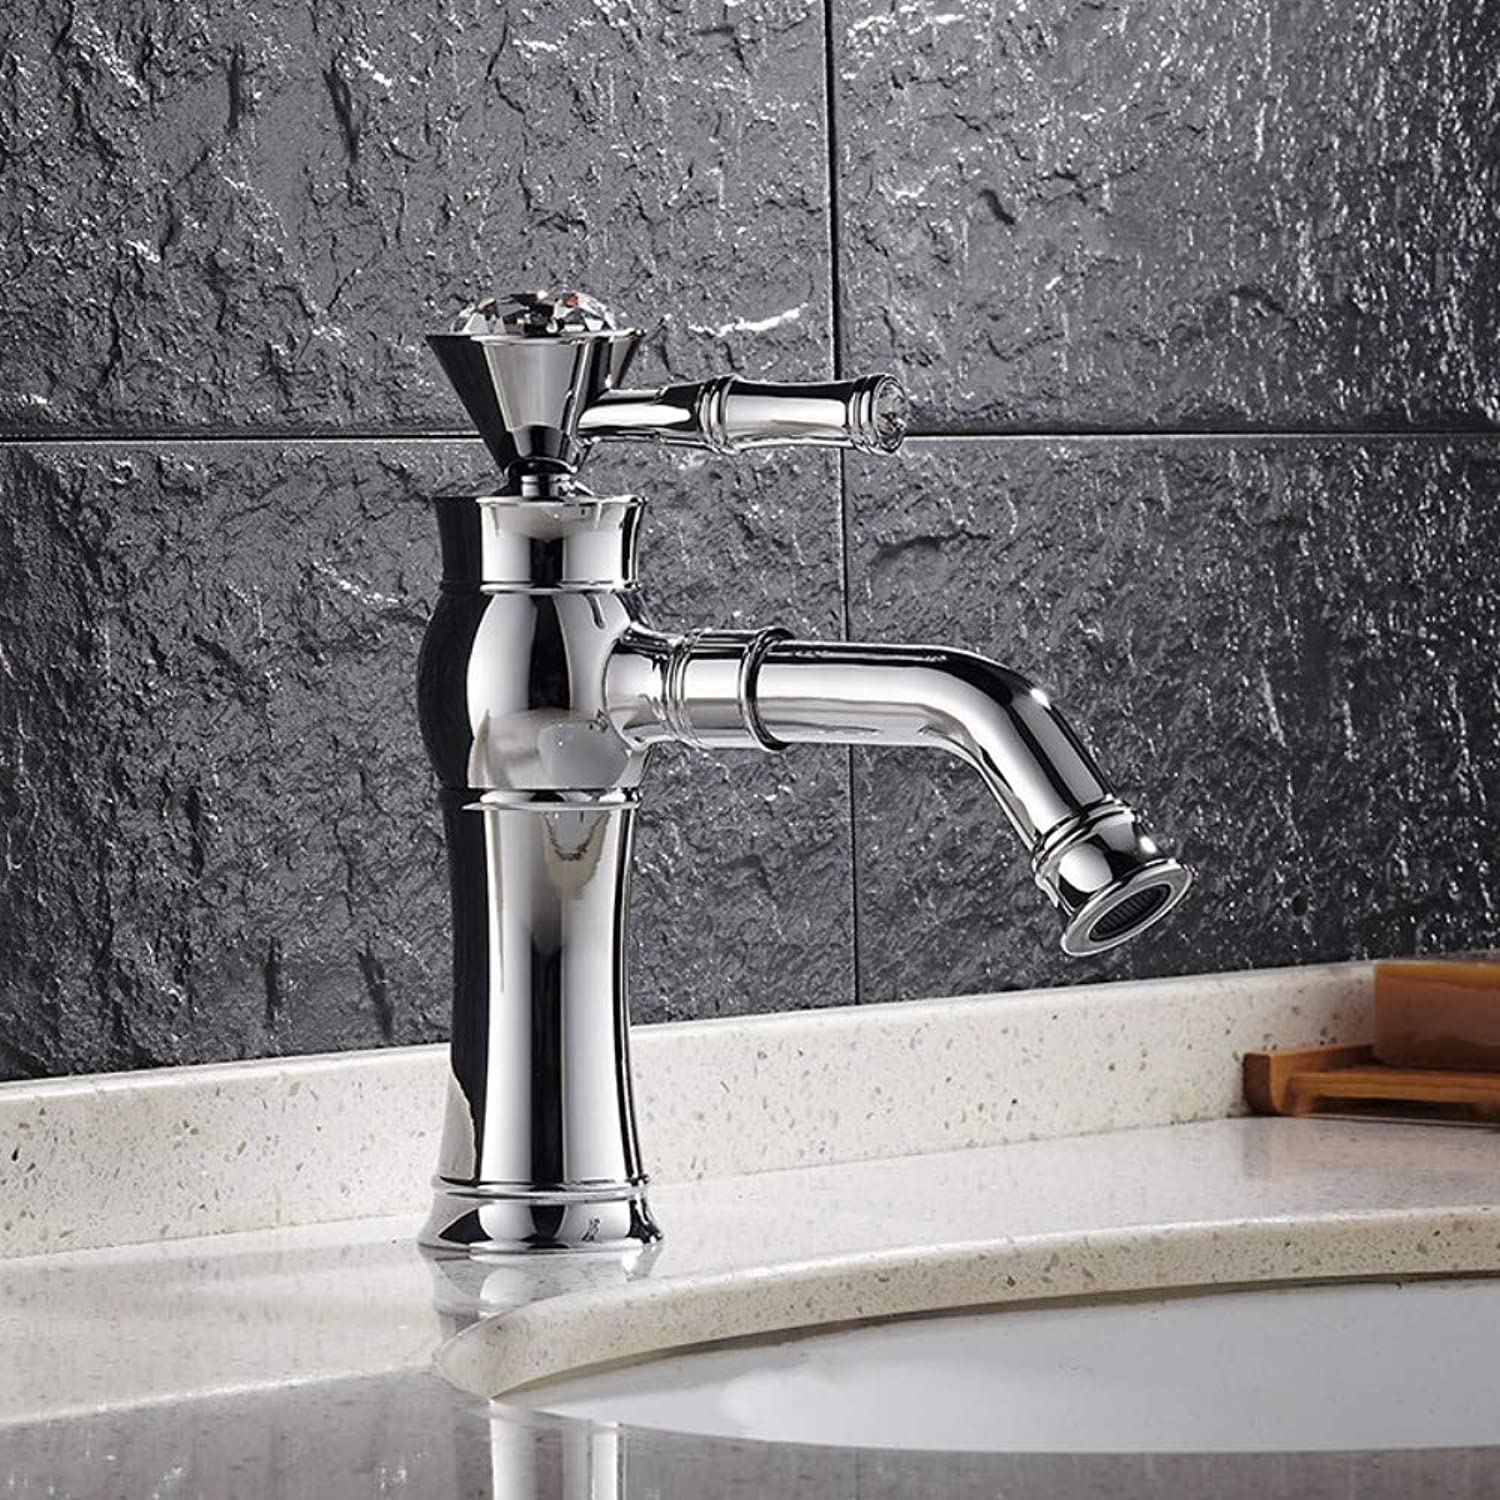 Bathroom Sink Tap Modern Chrome Faucet Bathroom Single Handle Basin Faucet Deck Mounted Bathroom Faucet